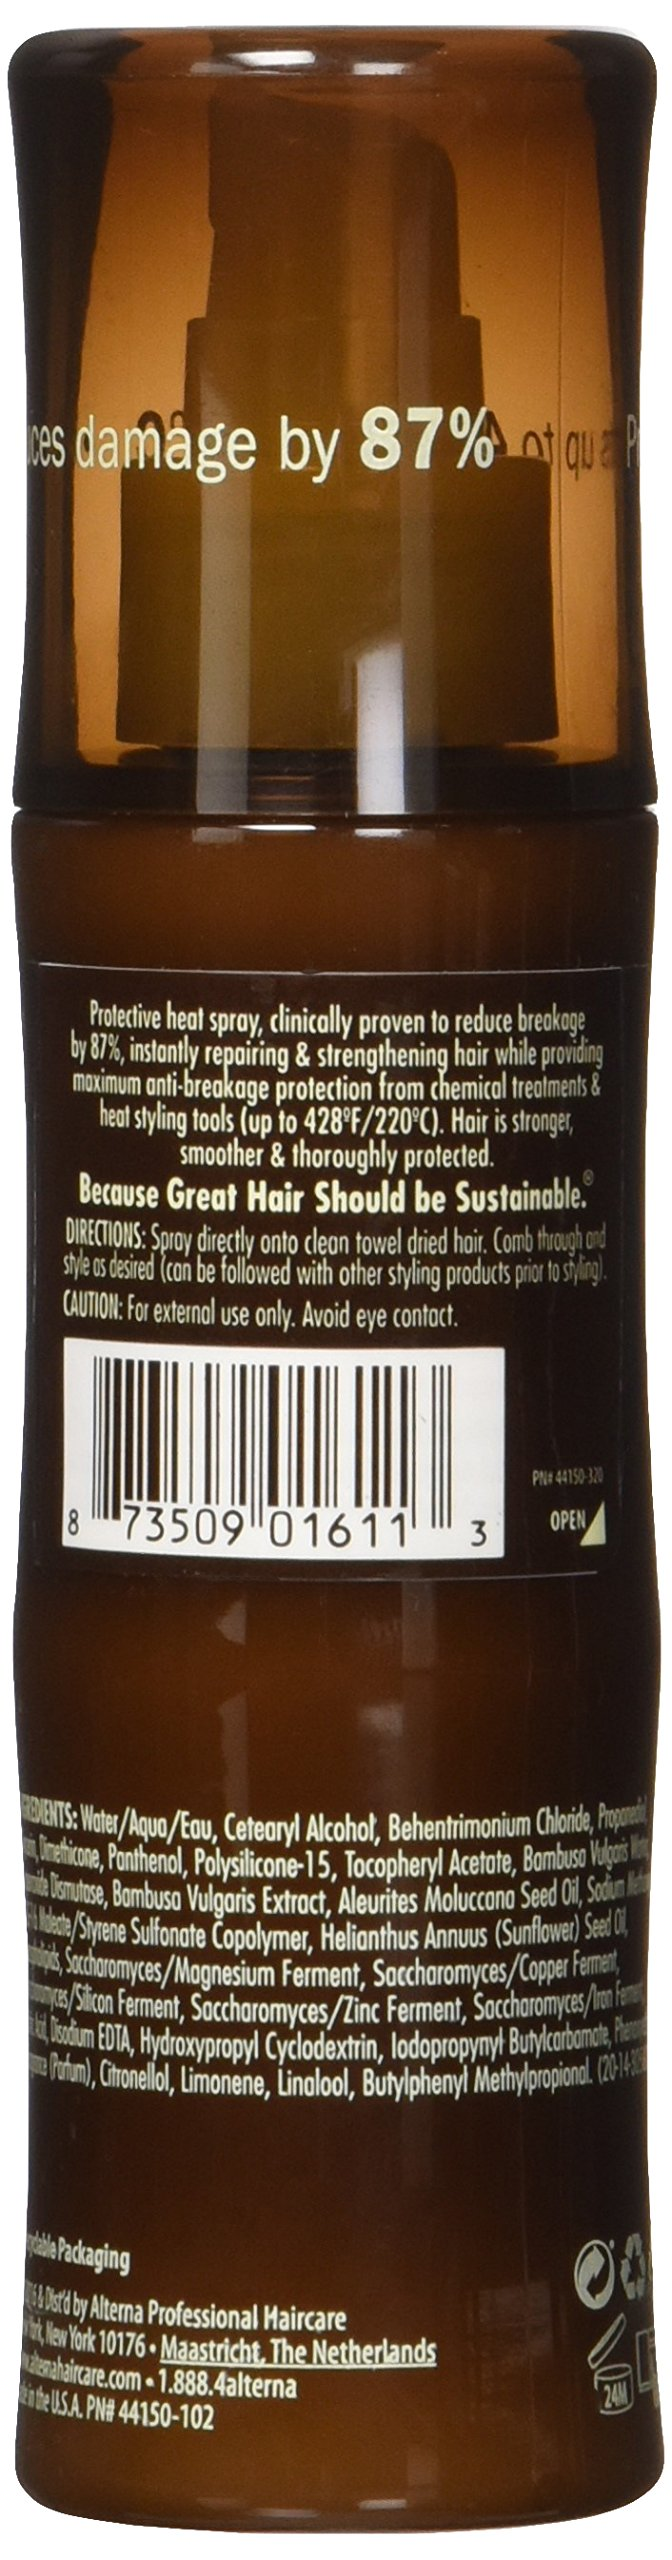 Bamboo Smooth Anti-Breakage Thermal Protectant, 4.2-Ounce